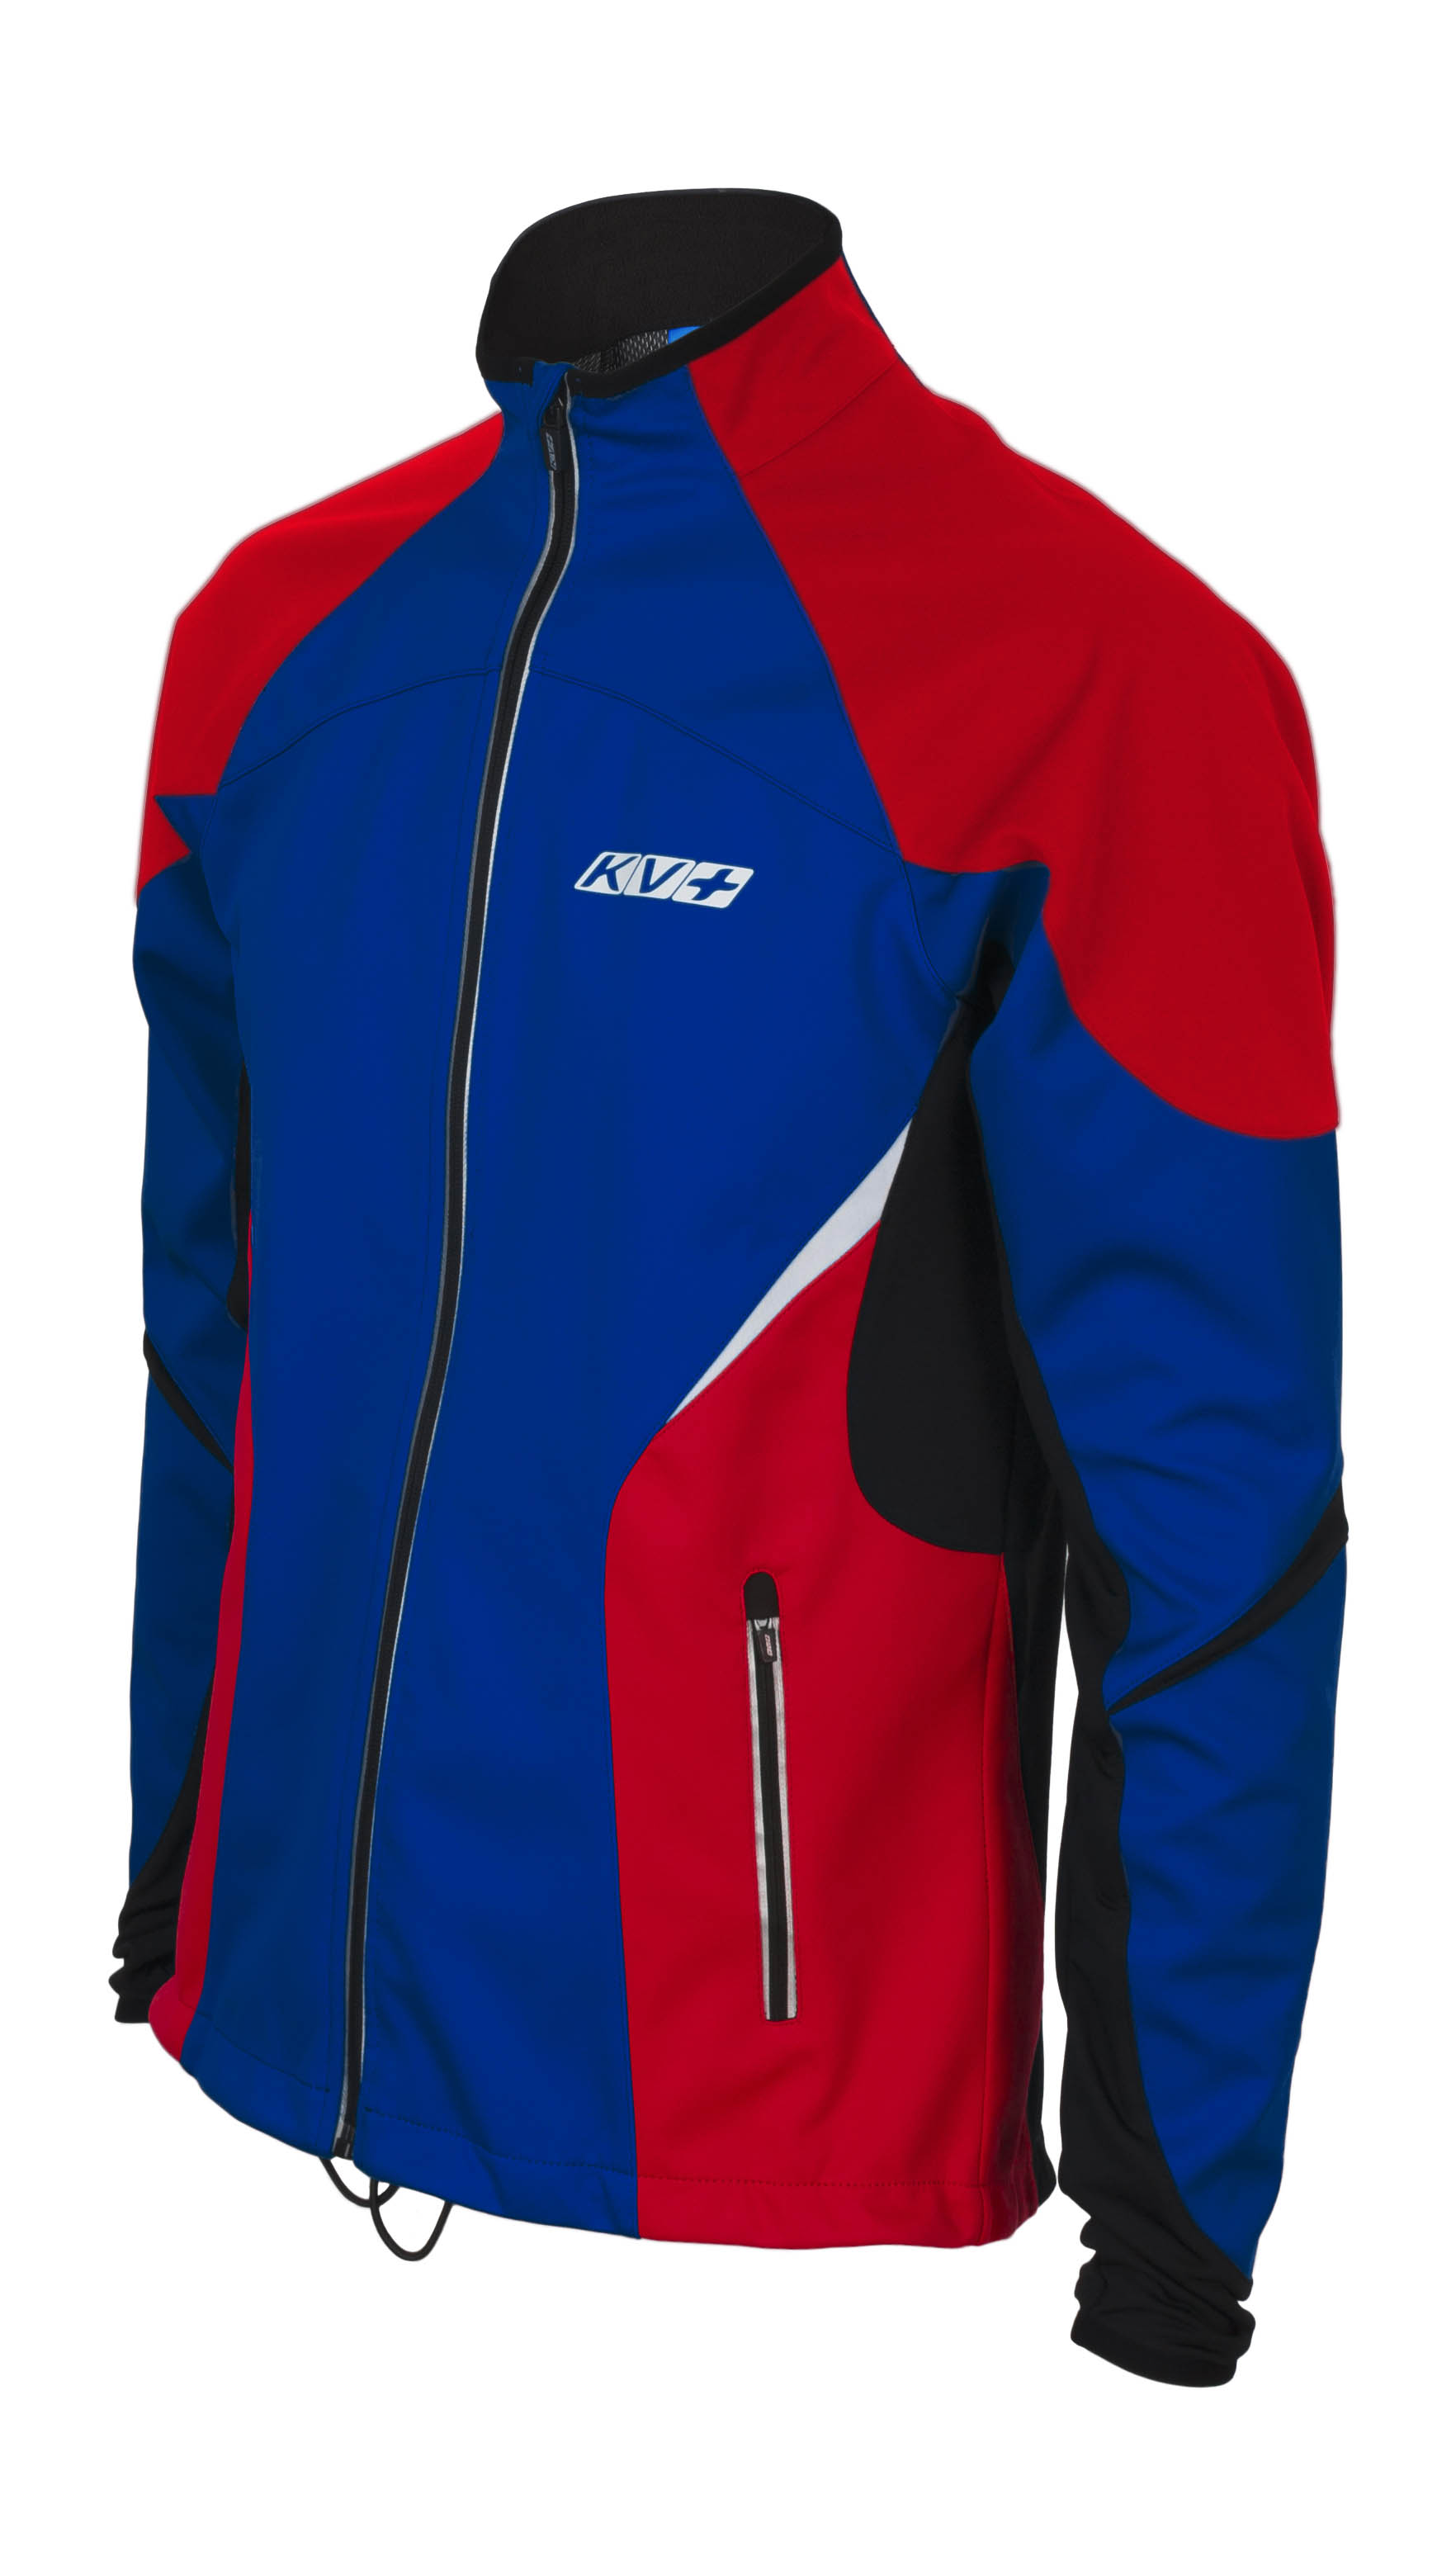 KV+ LAHTI JACKET JUNIOR Navy/Black/Red 7V116-4J